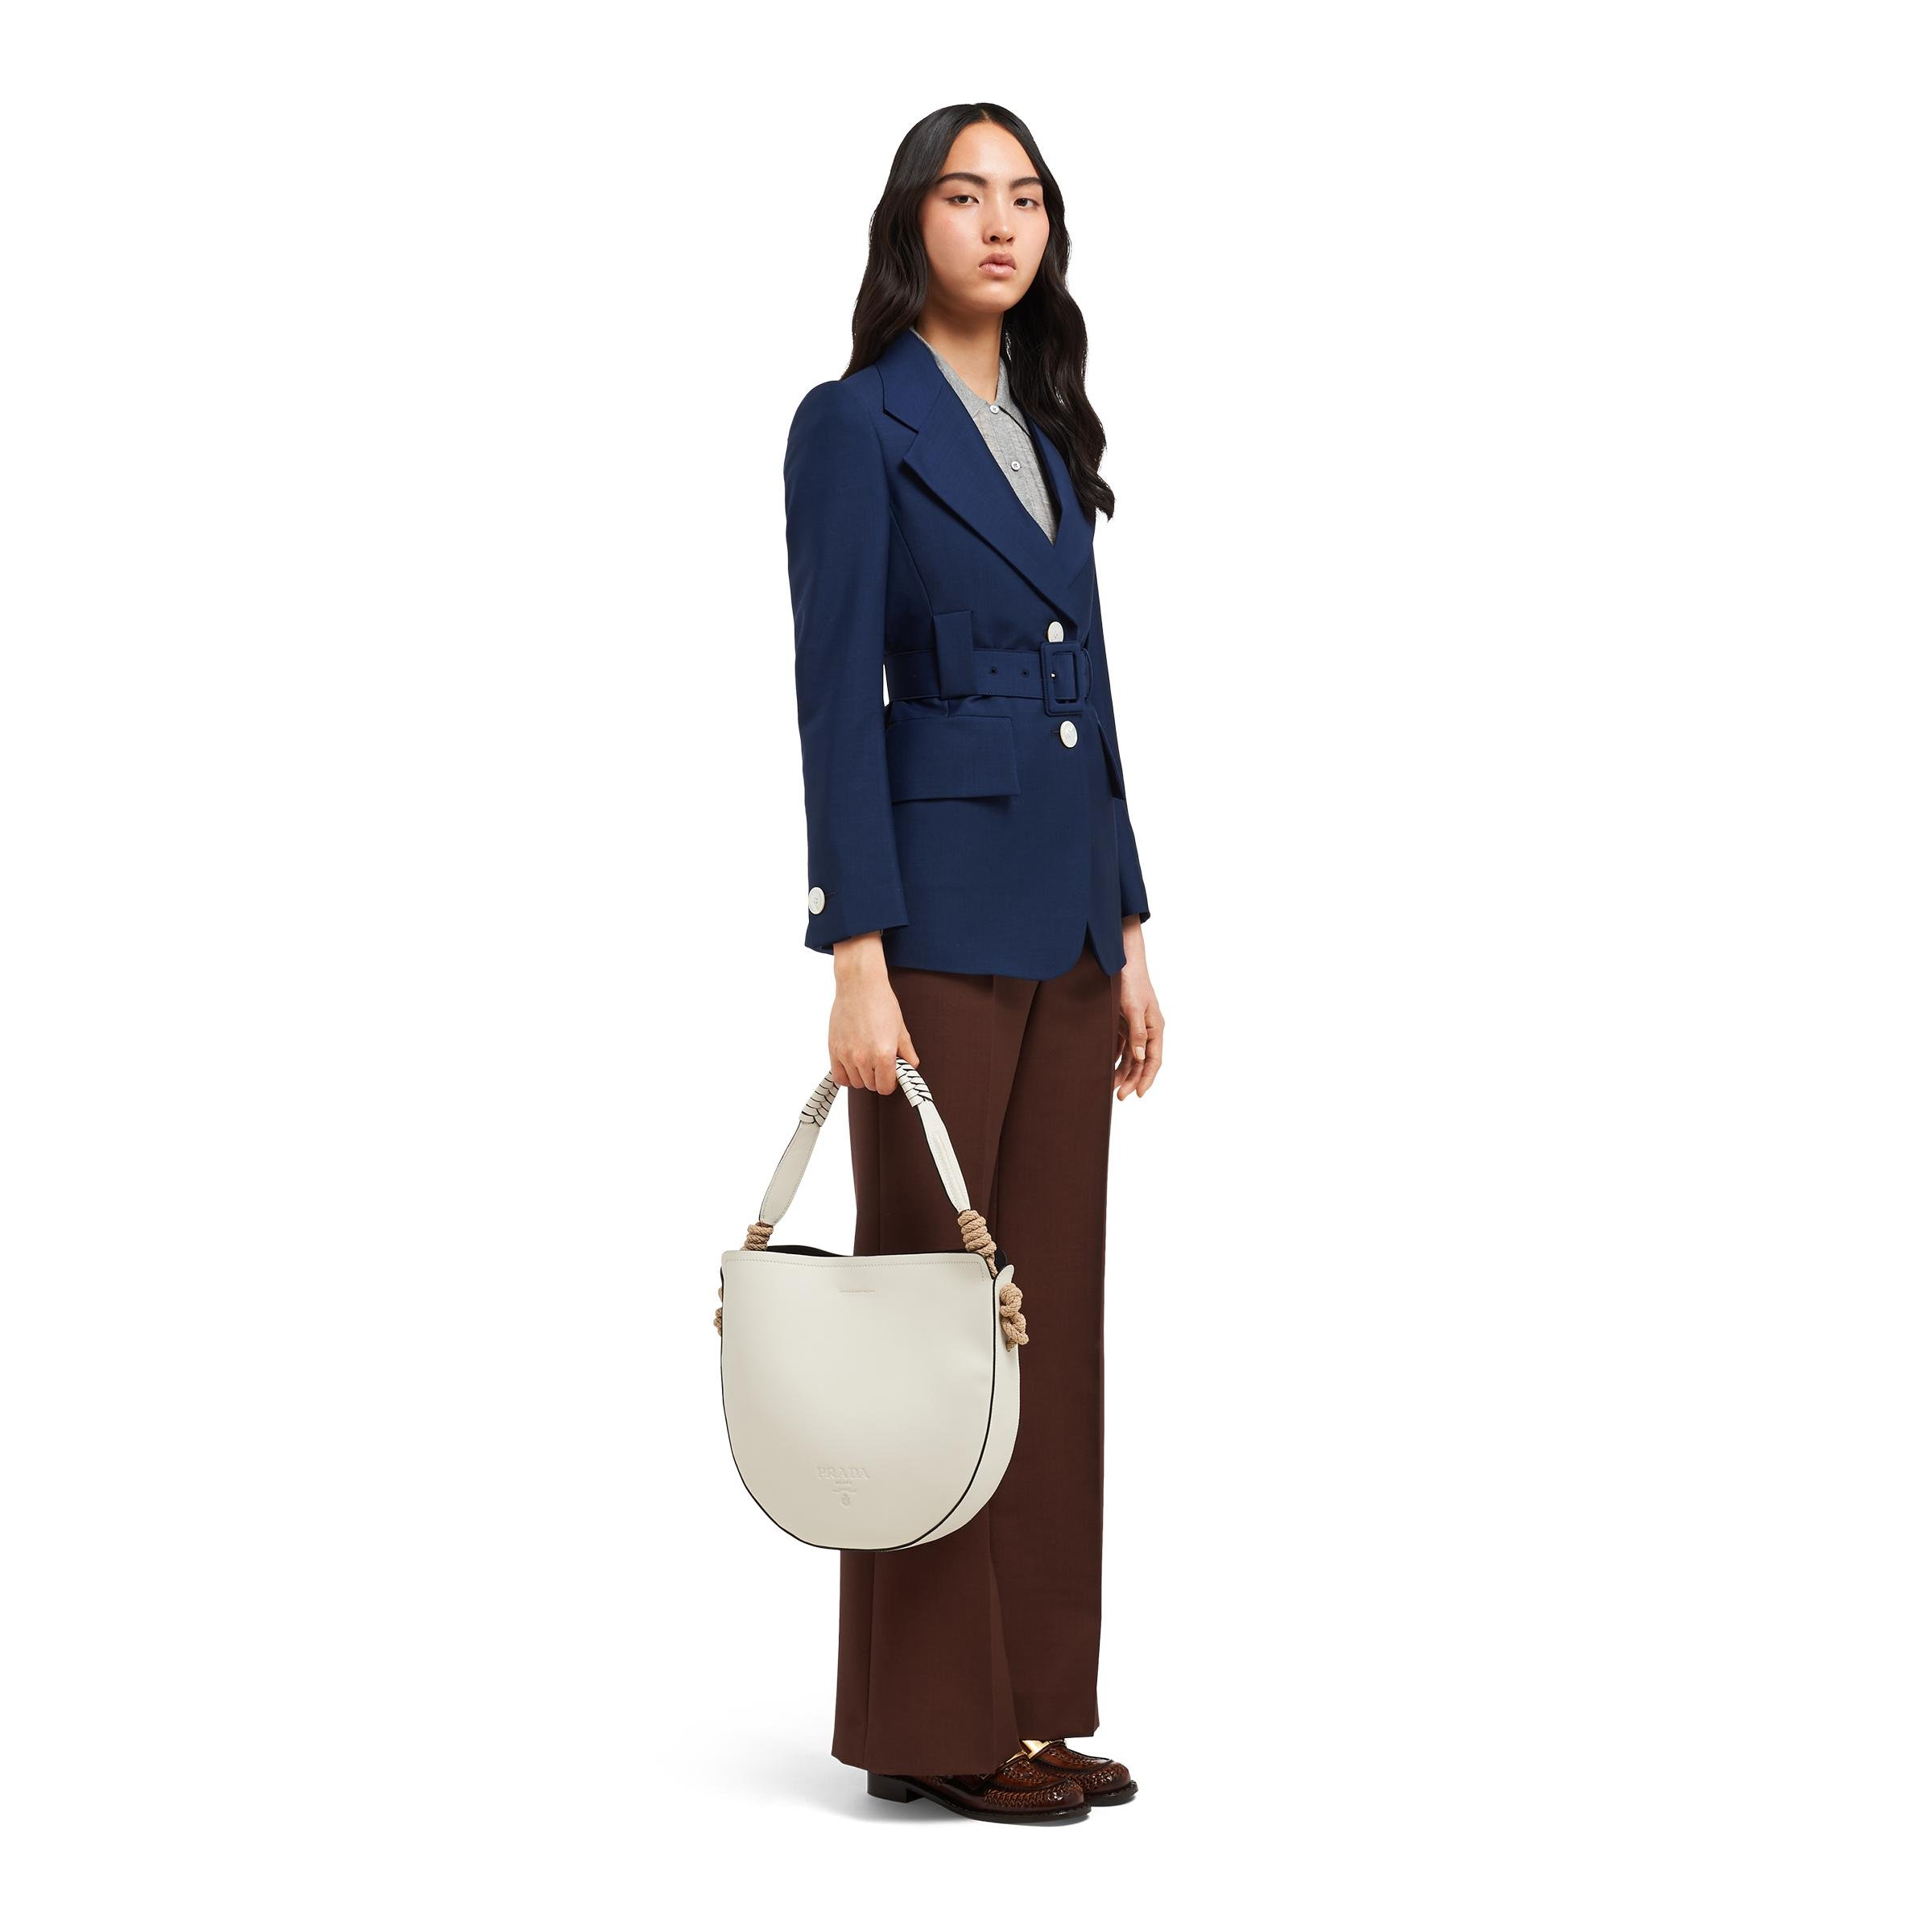 Leather Bag With Cord Details Women White/black 6